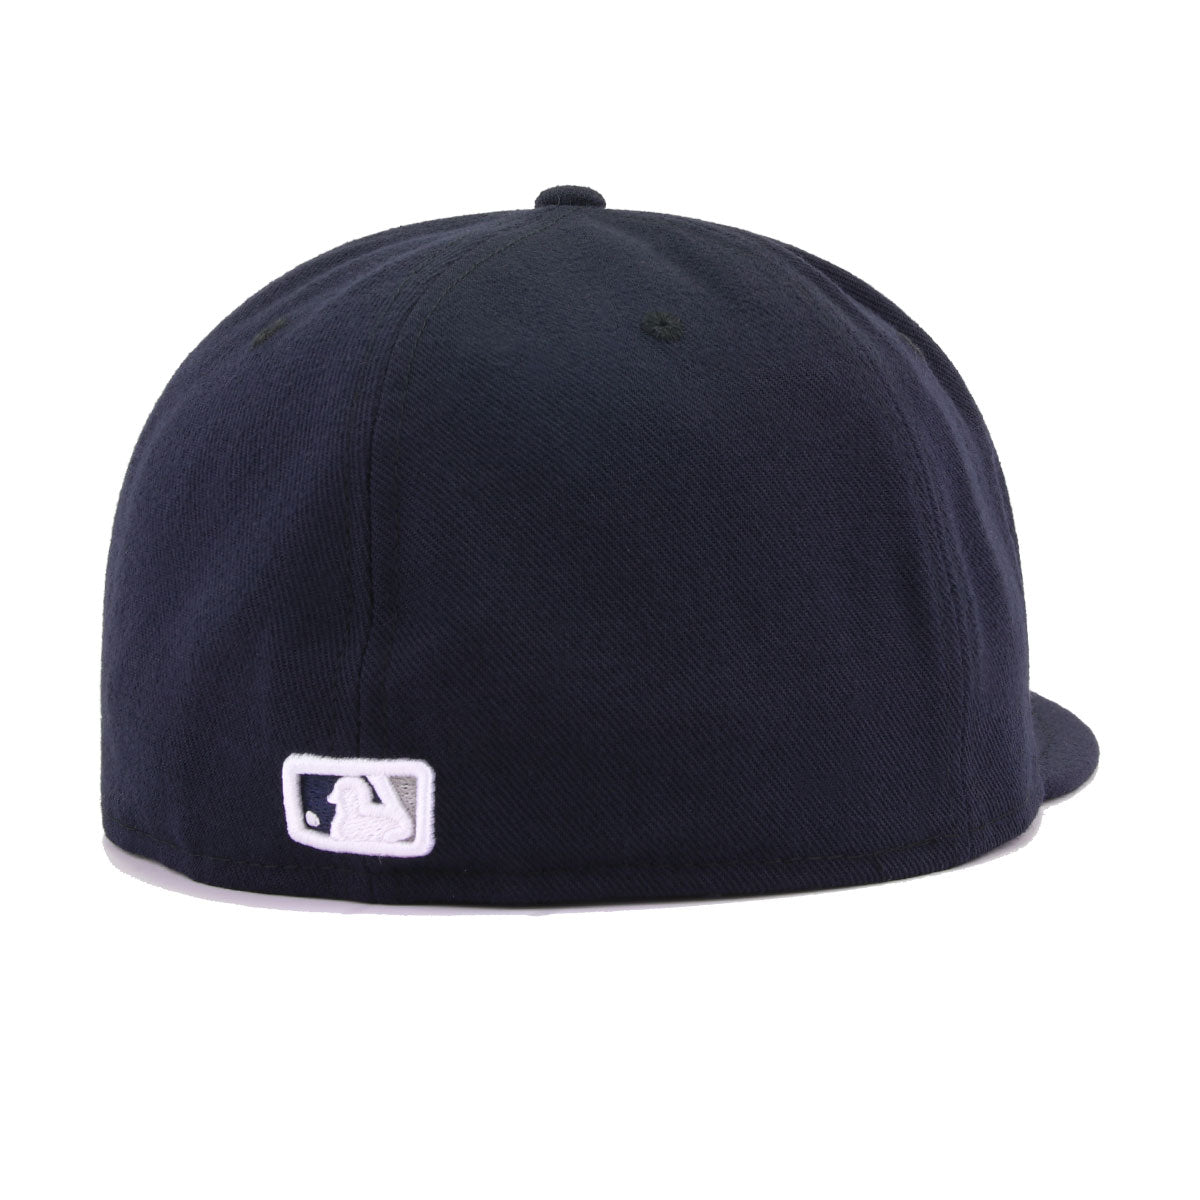 New York Yankees Navy On-Field Authentic Collection New Era 59Fifty Fitted